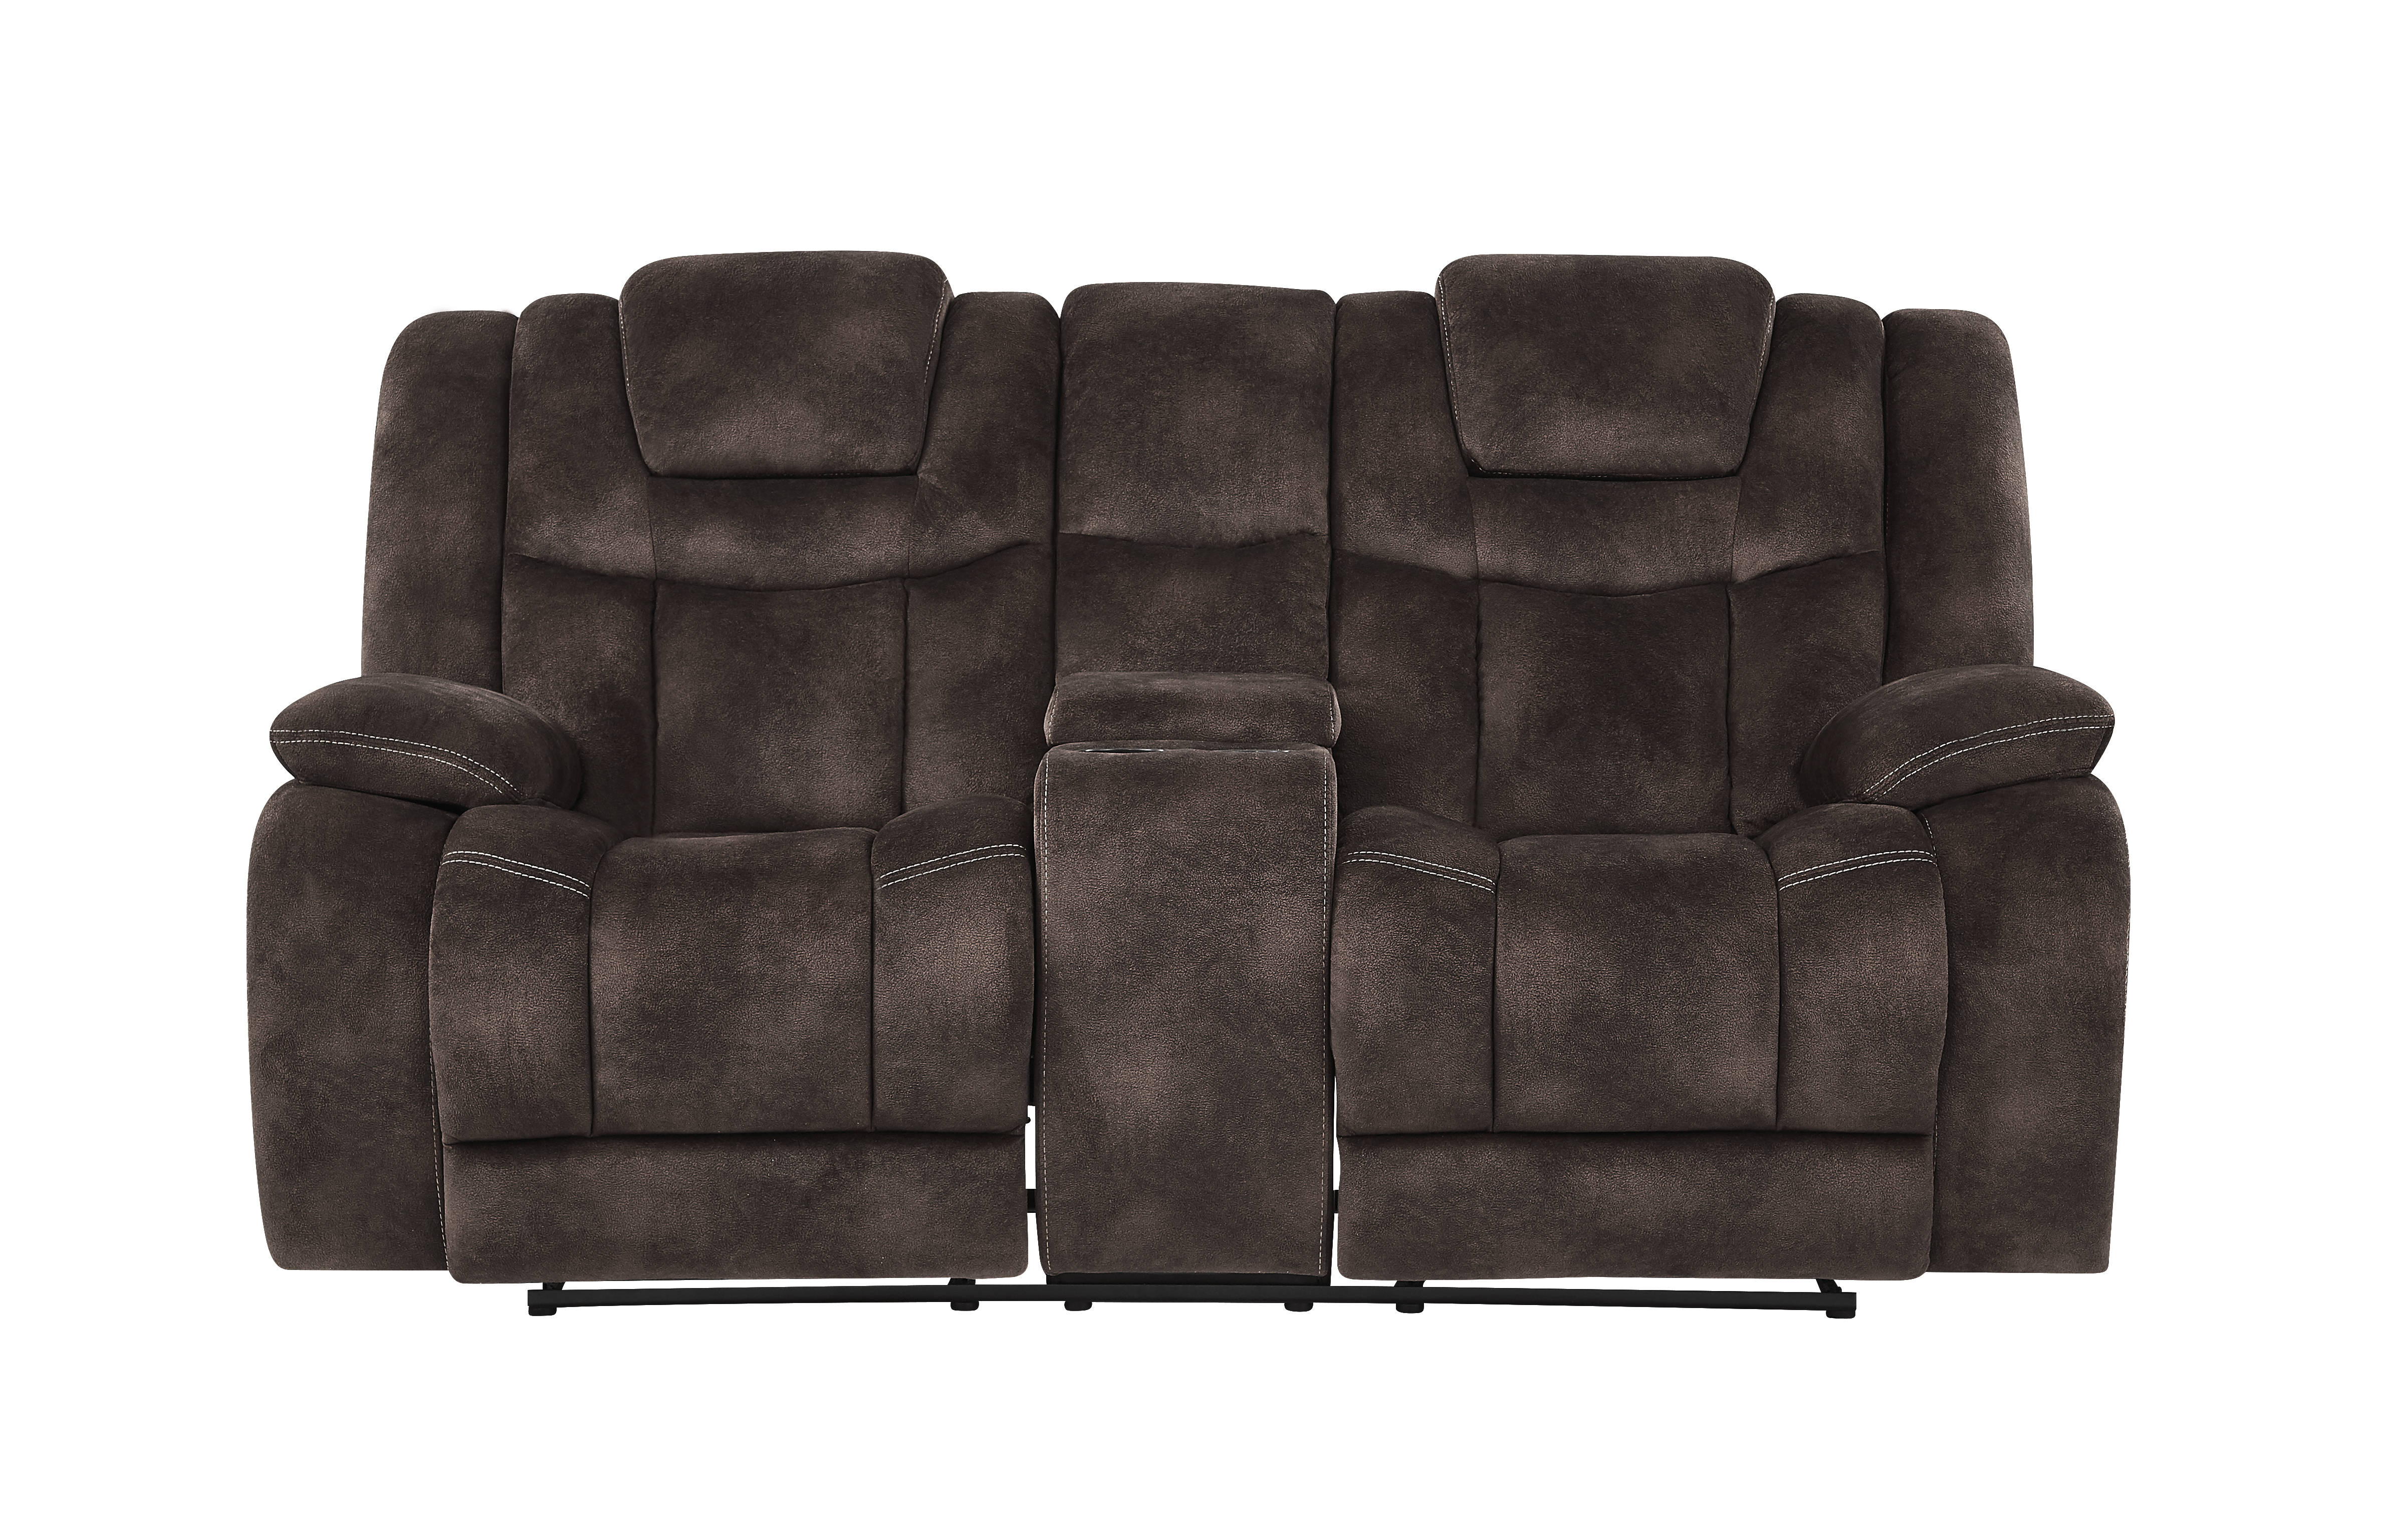 Tremendous Global Furniture U1706 Chocolate Fabric Power Reclining Loveseat Ocoug Best Dining Table And Chair Ideas Images Ocougorg